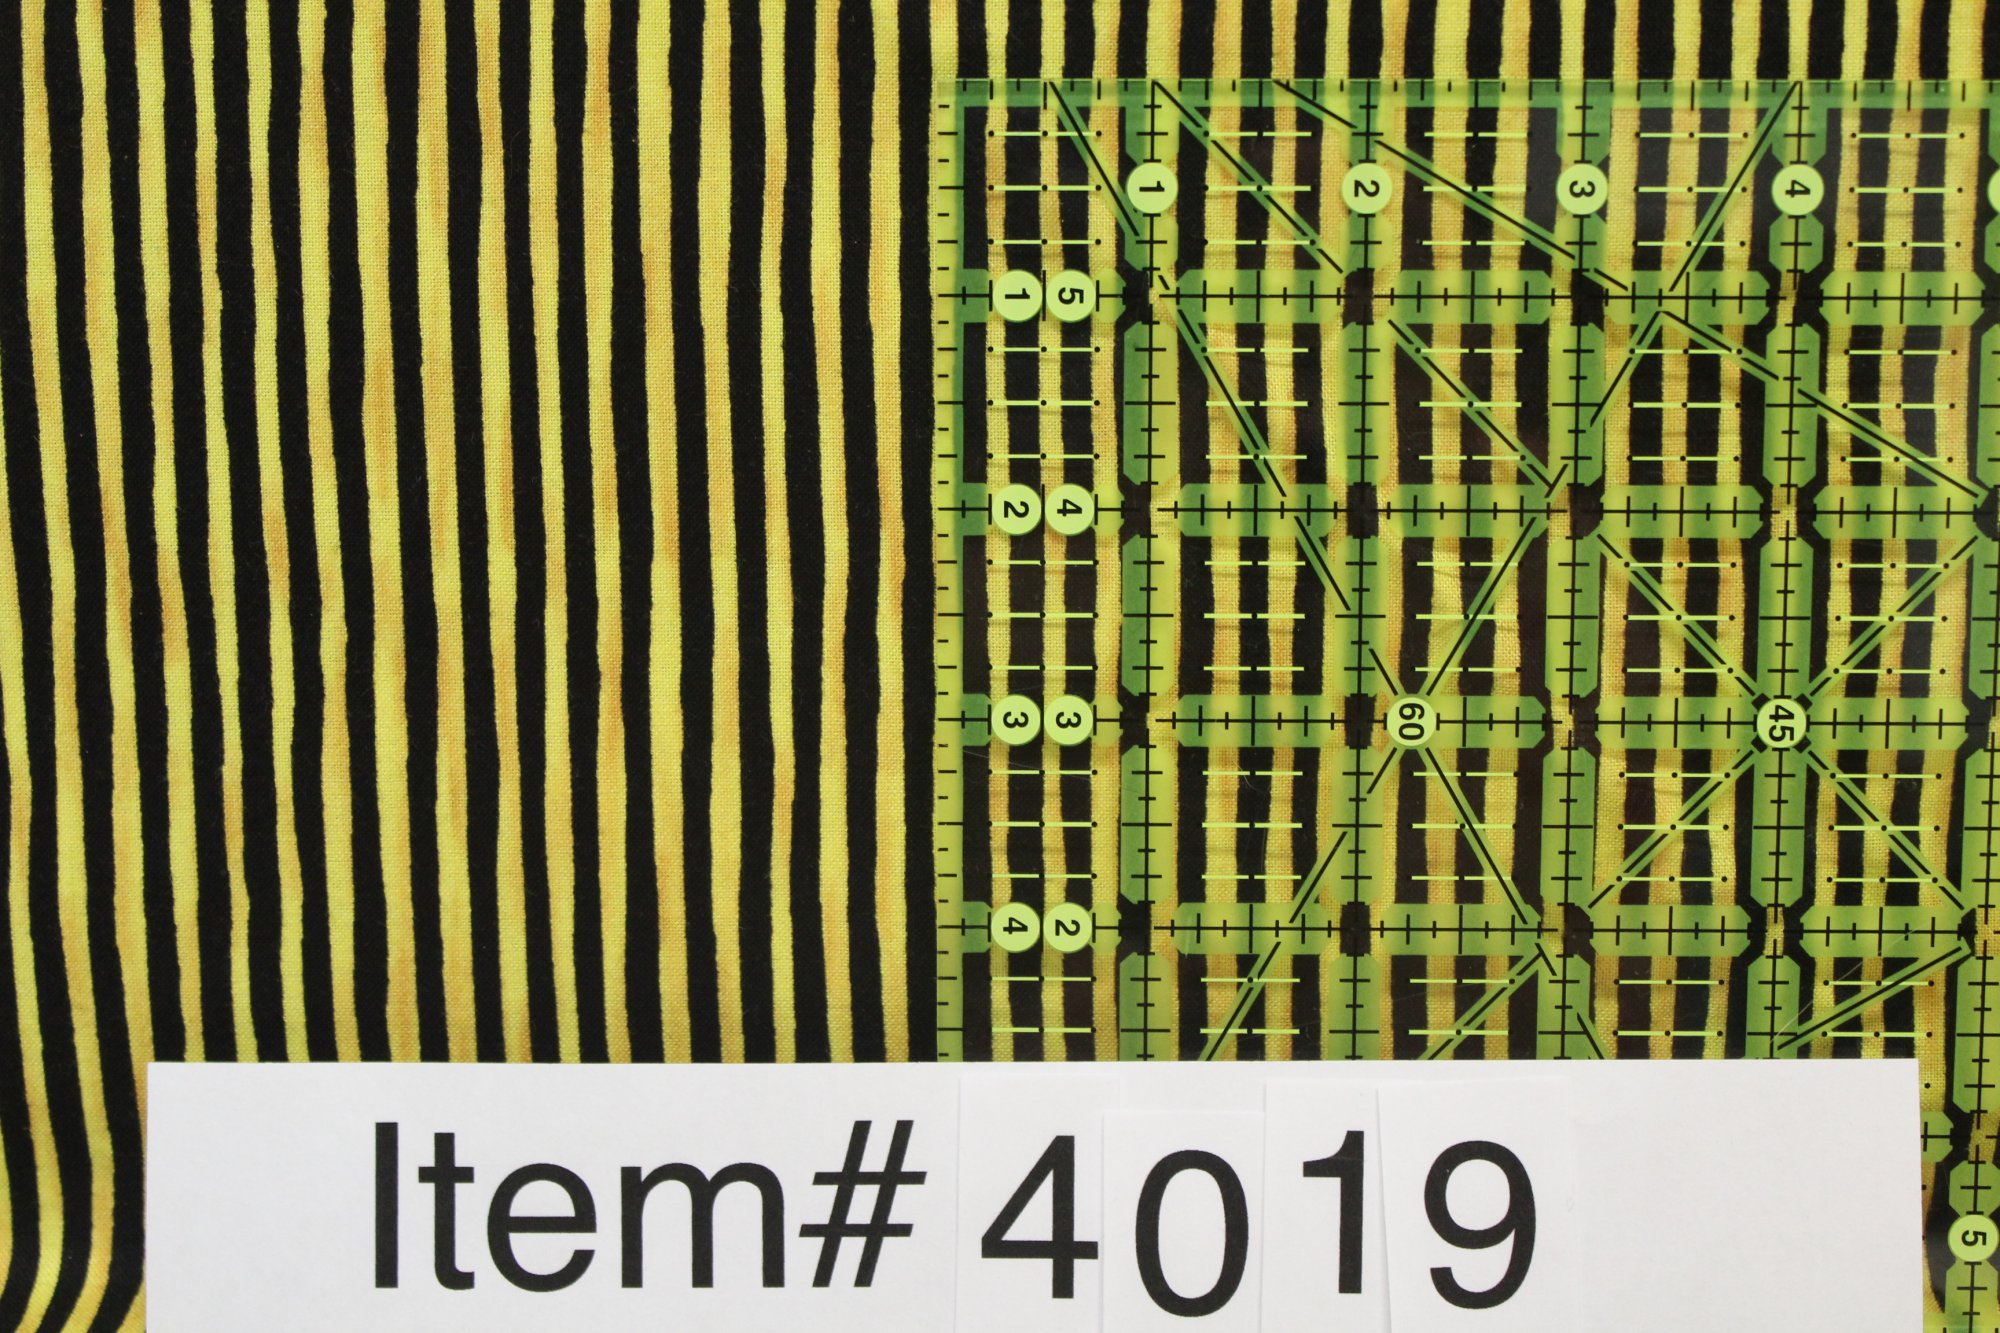 Item#4019 - Bugging Out - Blank  - Bolt4019